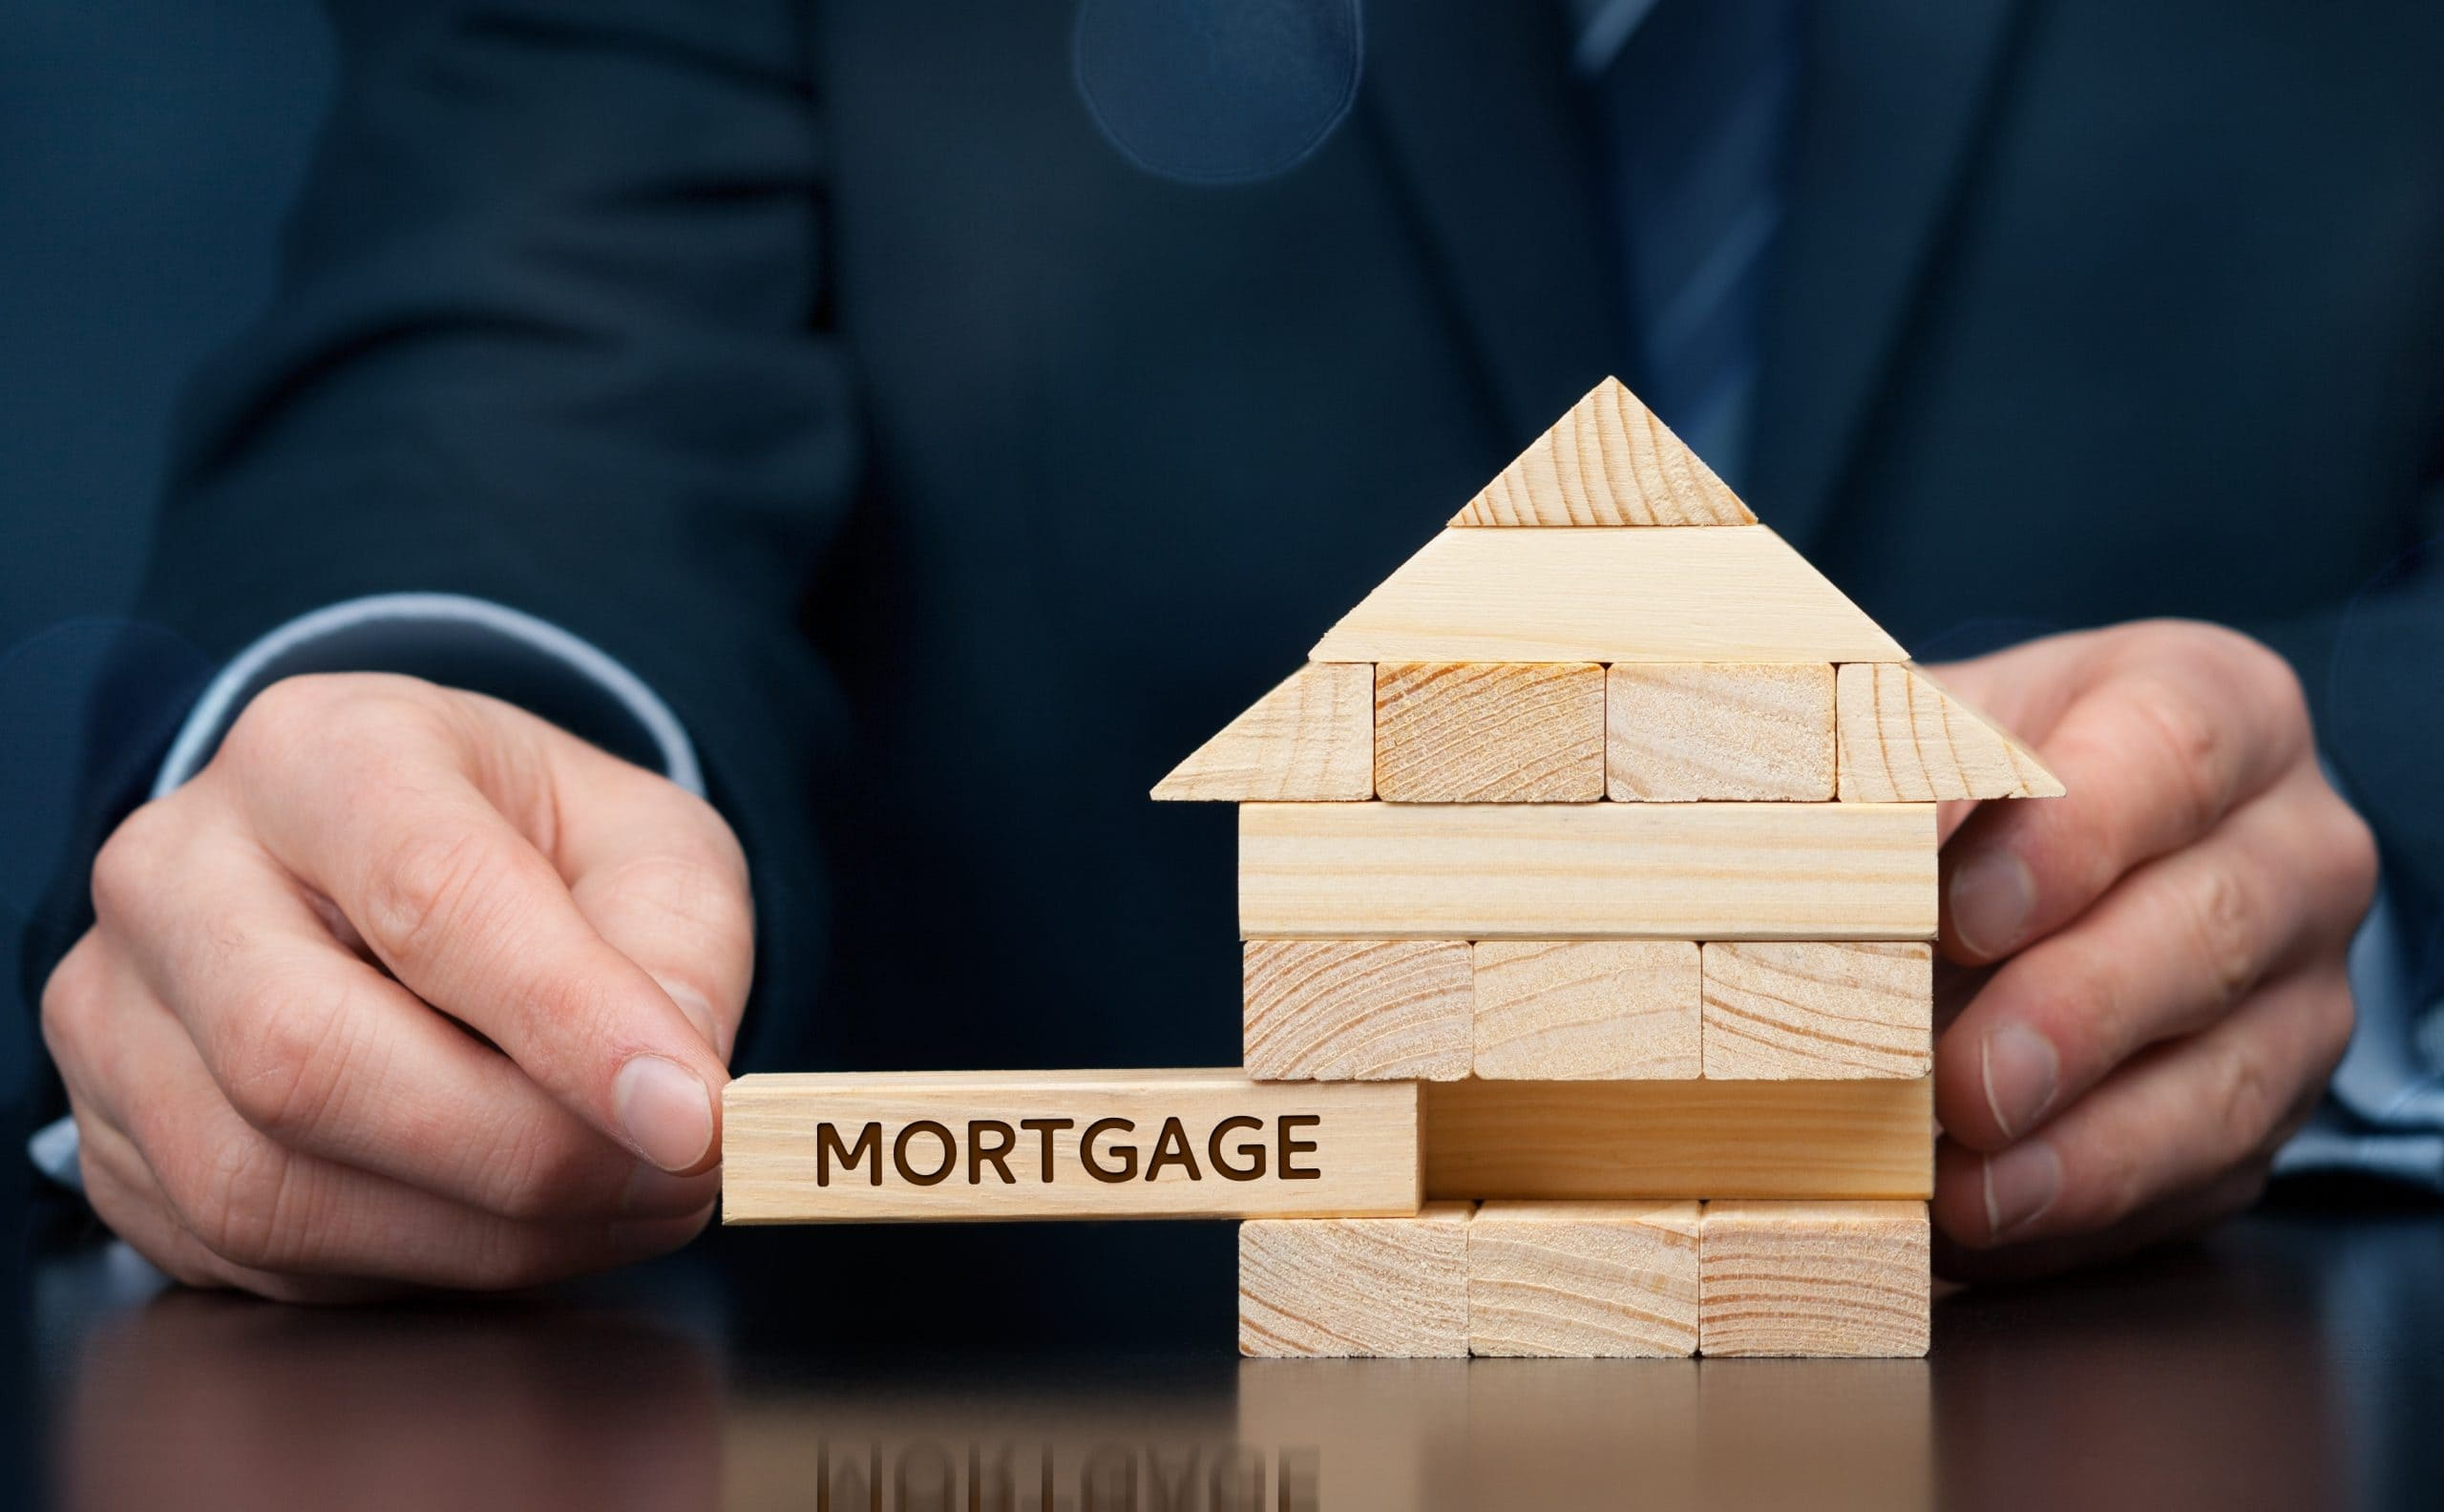 How To Get The Best Mortgage Renewal Terms